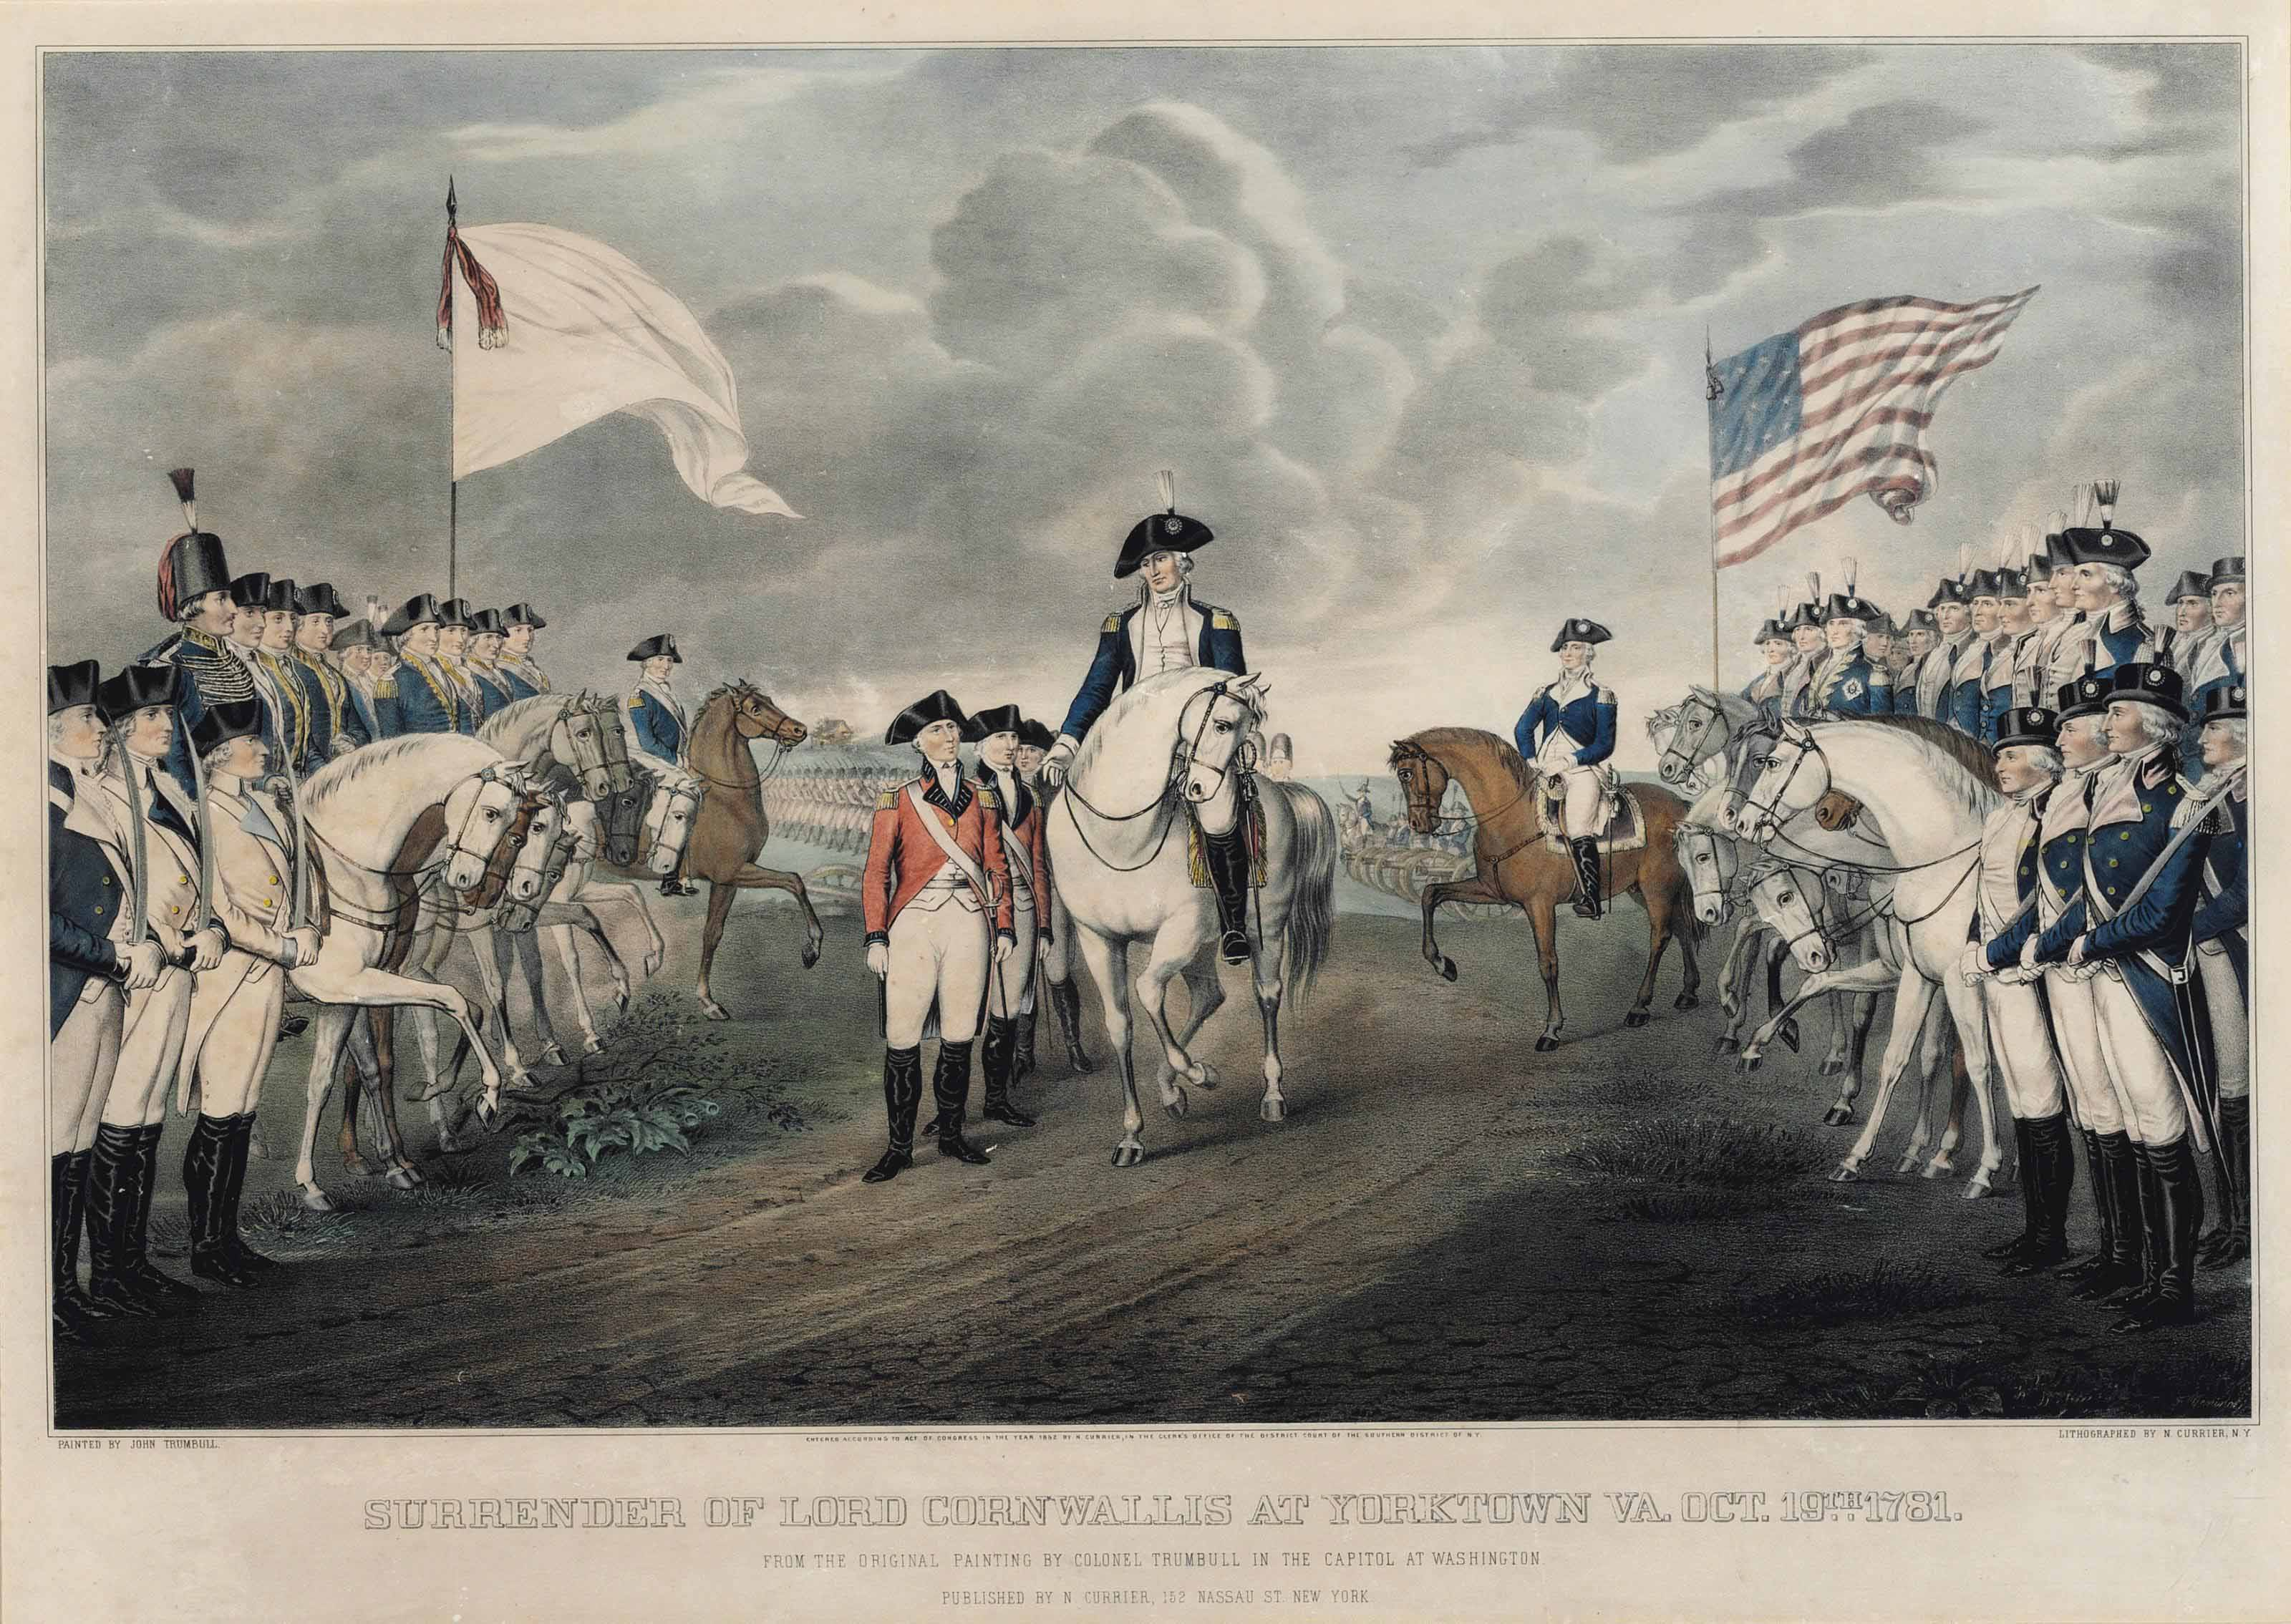 CURRIER and IVES, publishers. – Otto Knirsch after a painting by John Trumbull. Surrender of General Burgoyne at Saratoga N.Y. Oct. 17th. 1777 (G.6371) – Franz Venino after a painting by John Trumbull. Surrender of Lord Cornwallis At Yorktown VA. Oct. 19th. 1781 (G.6378).